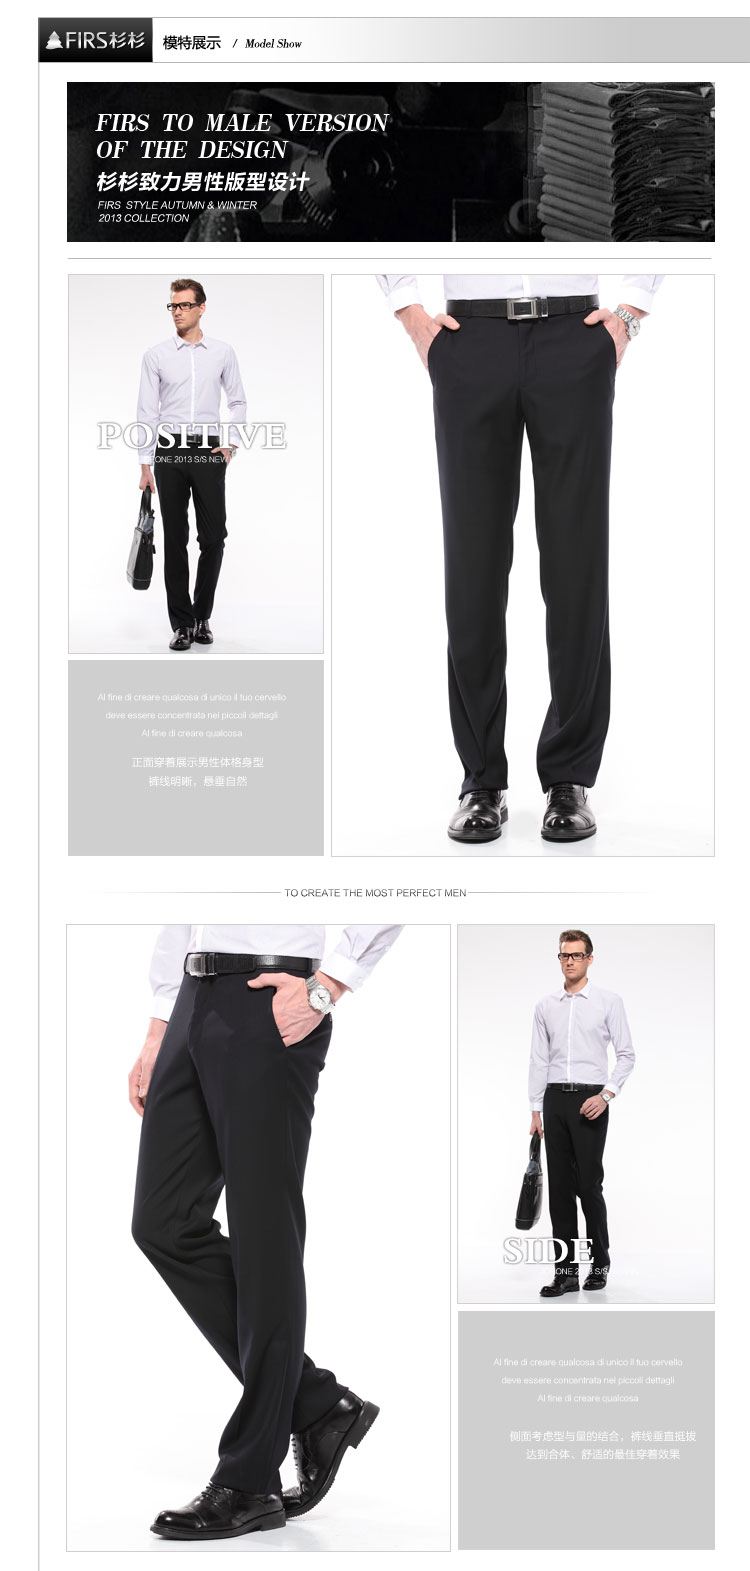 Firs Shanshan Genuine 2013 new winter business casual suit pants men trousers pleated permanent crease rhino